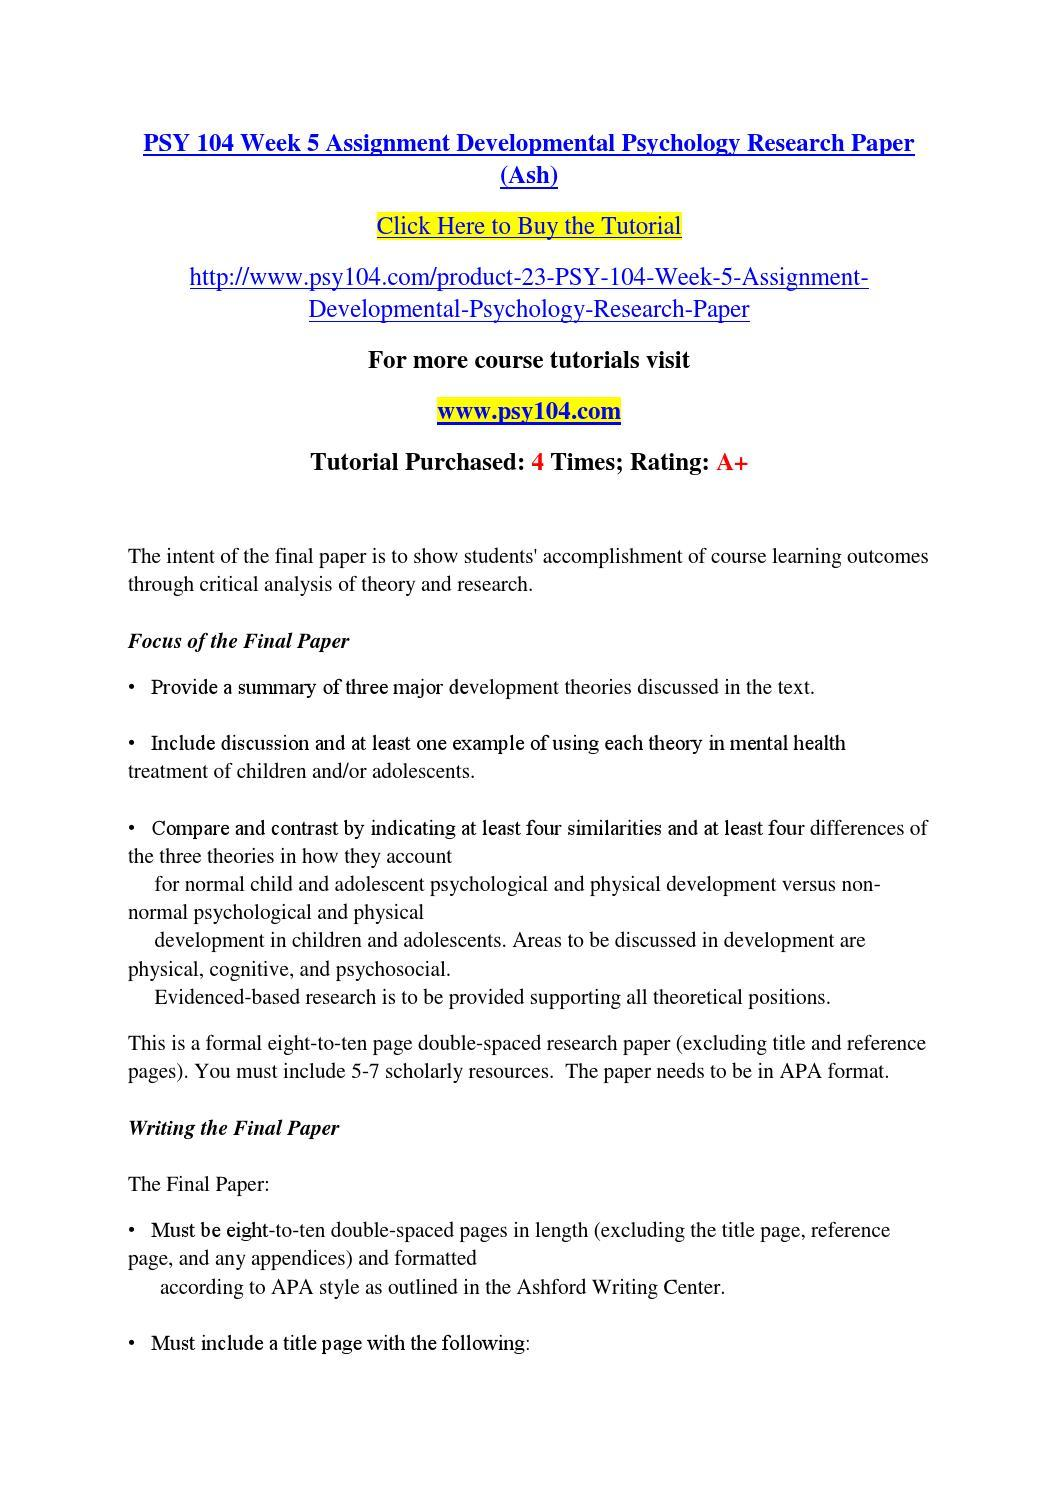 019 Psychology Research Paper Topics List Developmental Essay Ideas Structure Psychological20ent Awesome Topic Full